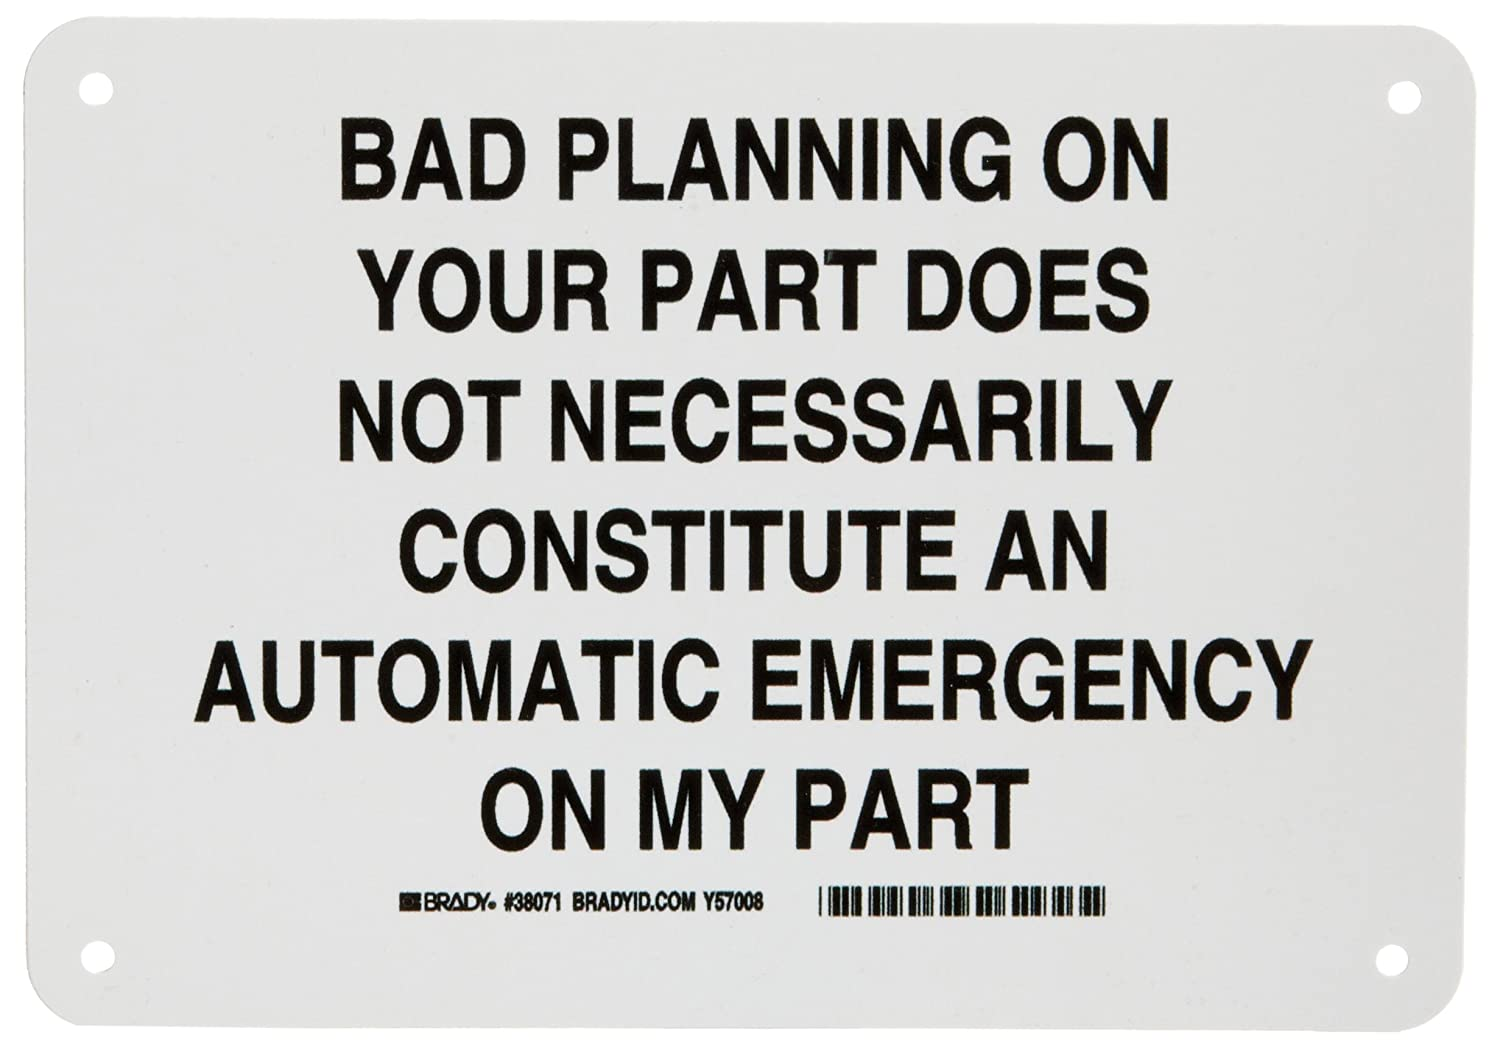 Brady 38071 7 Height Legend Bad Planning On Your Part Does Not Necessarily Constitute an Automatic Emergency On My Part 10 Width 10 Width Black On White Color Funny Sign B-401 Plastic